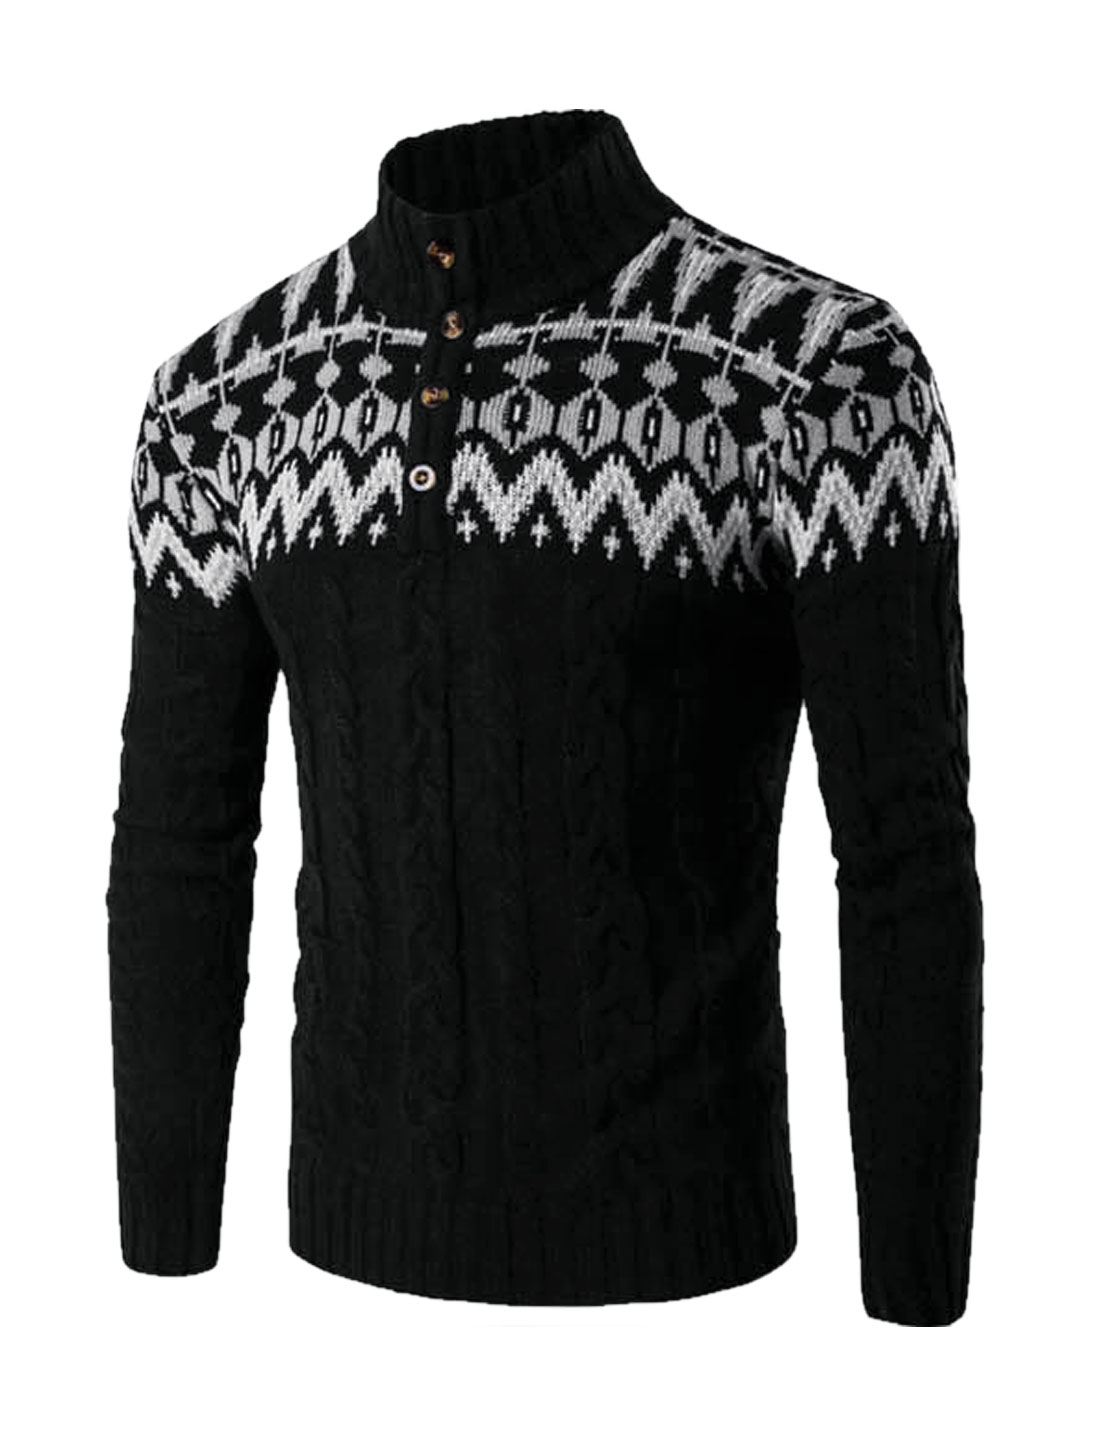 Men Stand Collar Button Upper Novelty Pattern Cable Knit Sweater Black M